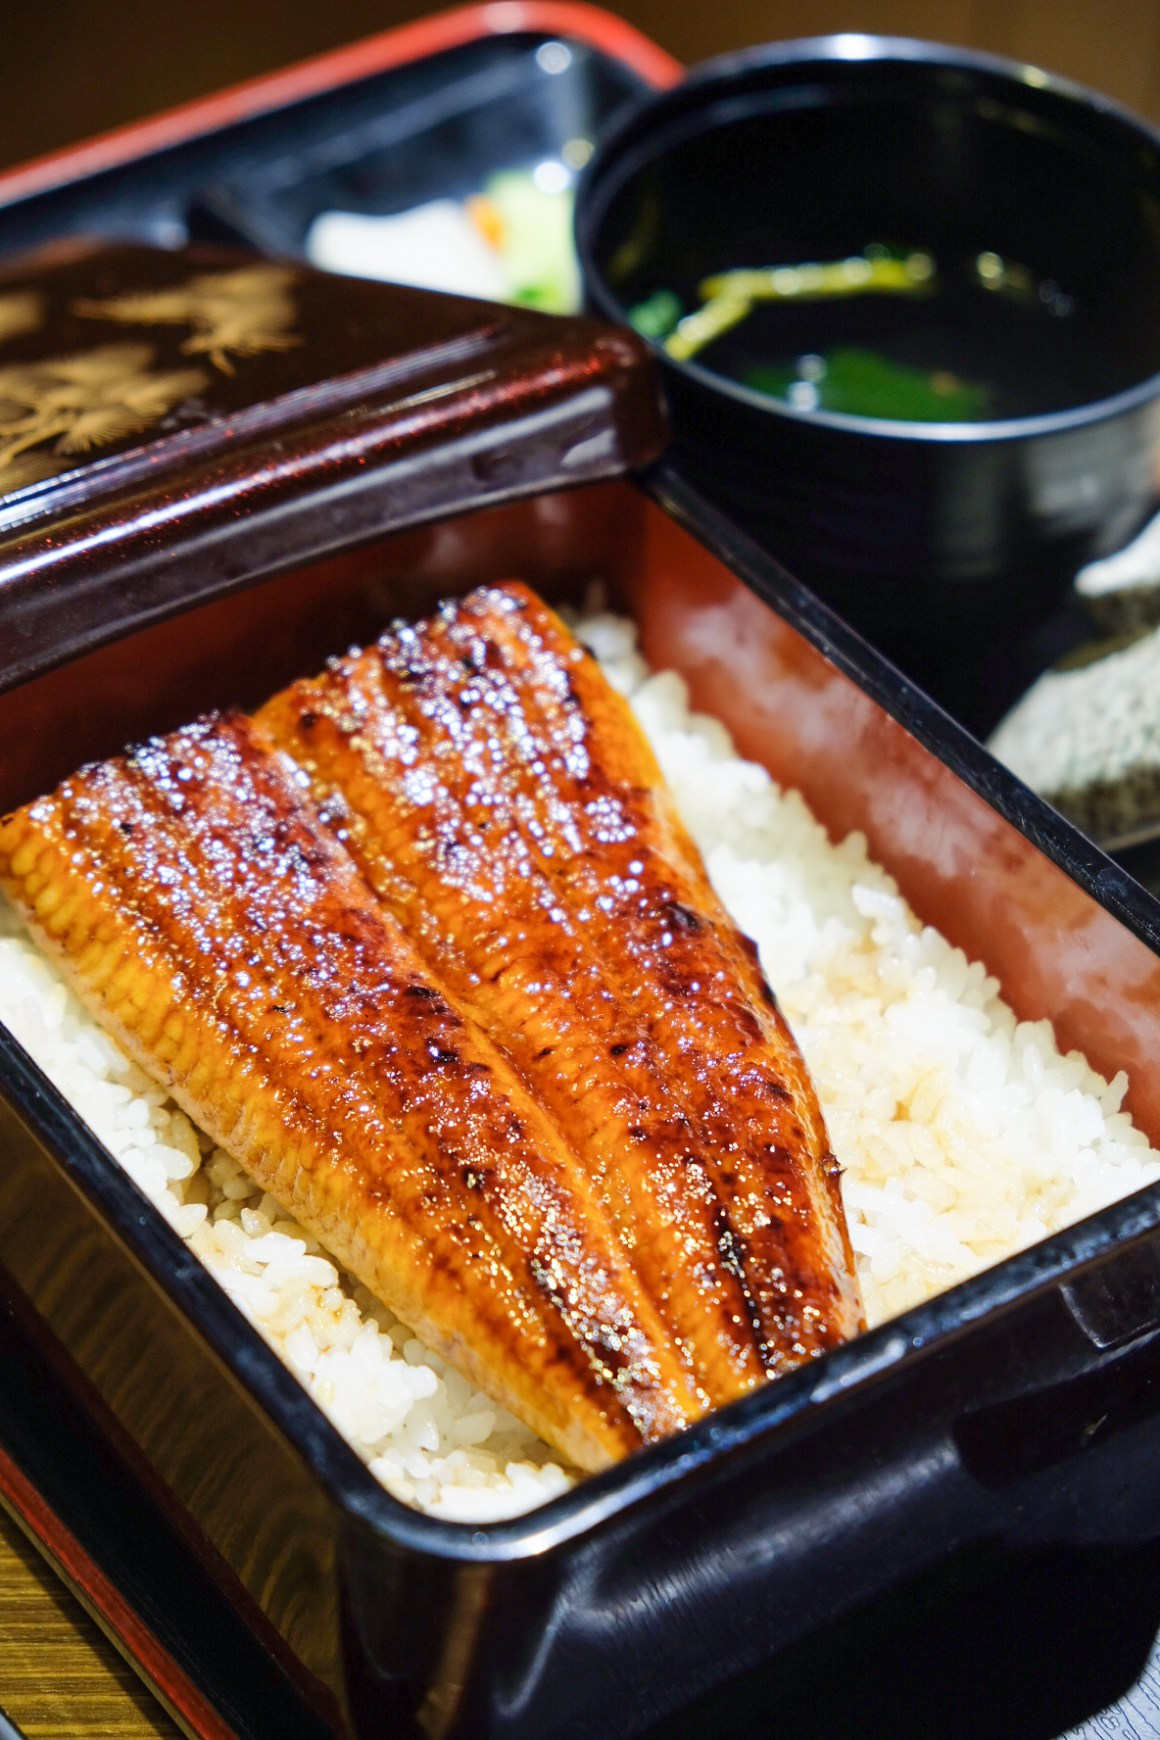 UnaUna Serving $9.80 Charcoal-Grilled Unagi Hitsumabushi At Bugis+ - Unaju ($19.80-regular |  $29.80-double)